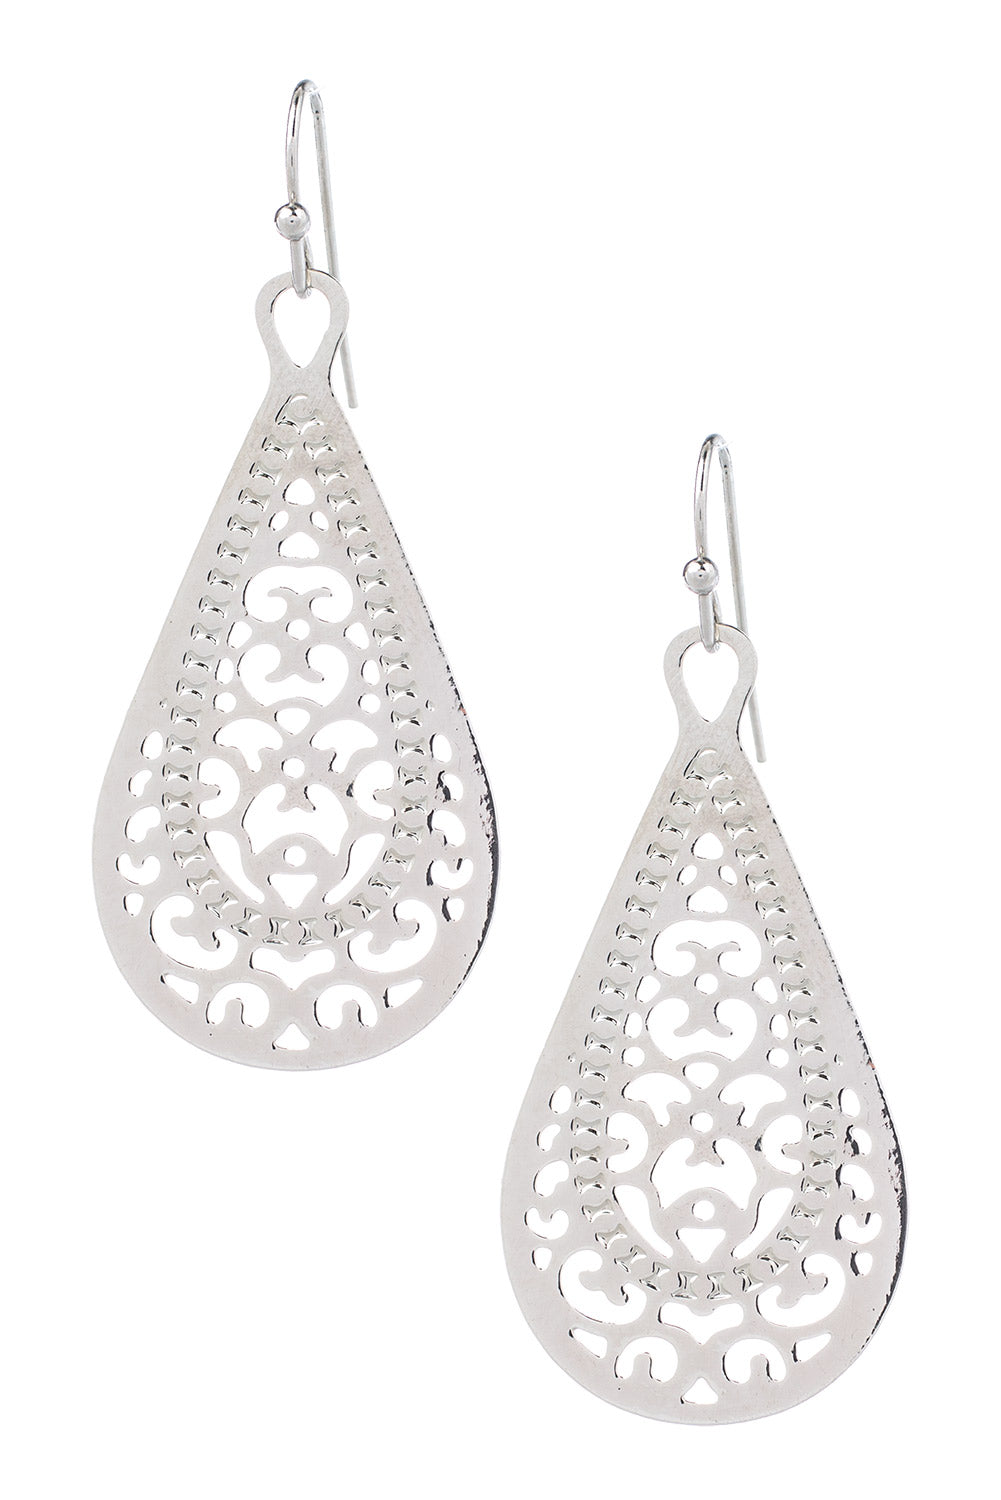 Type 2 Shining Tears Earrings